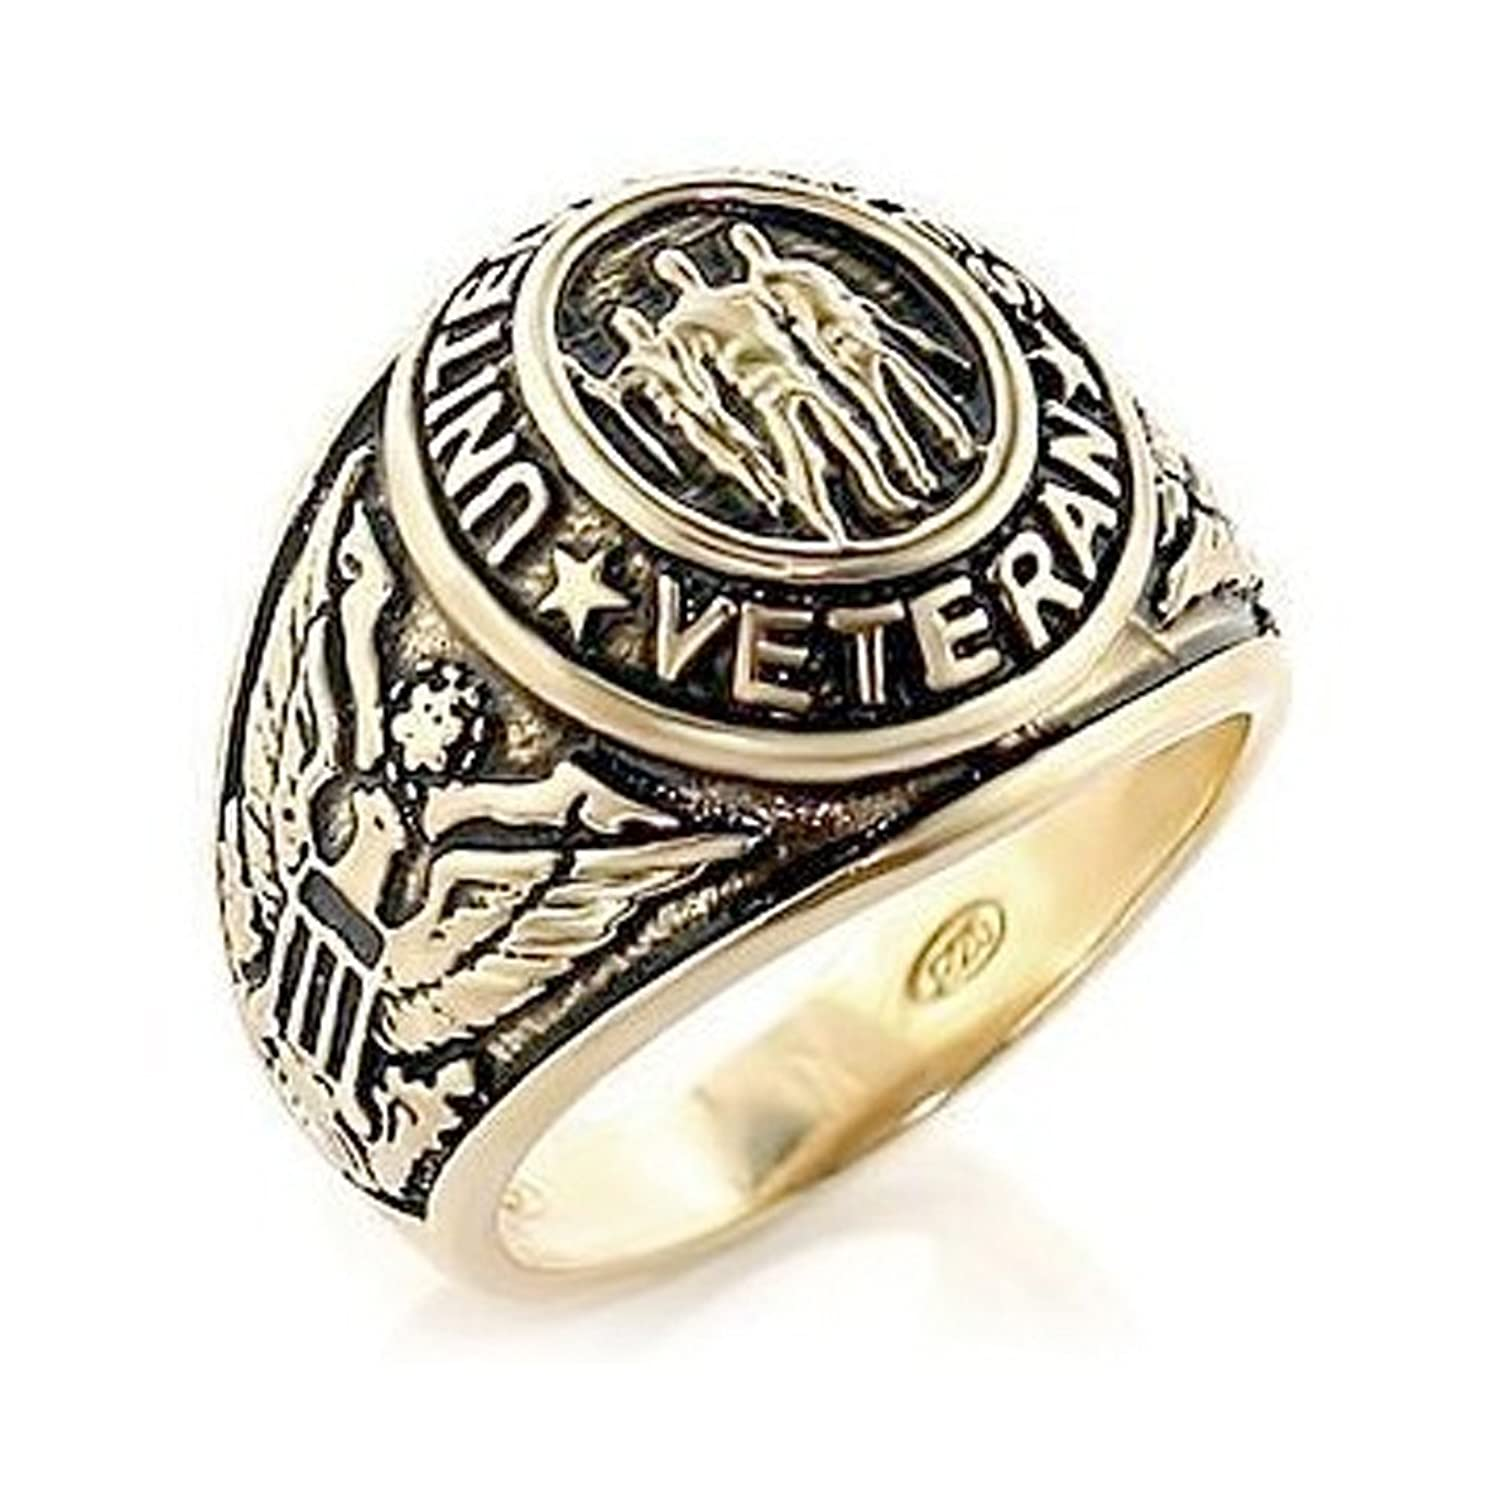 gold product police military or category rose rings img